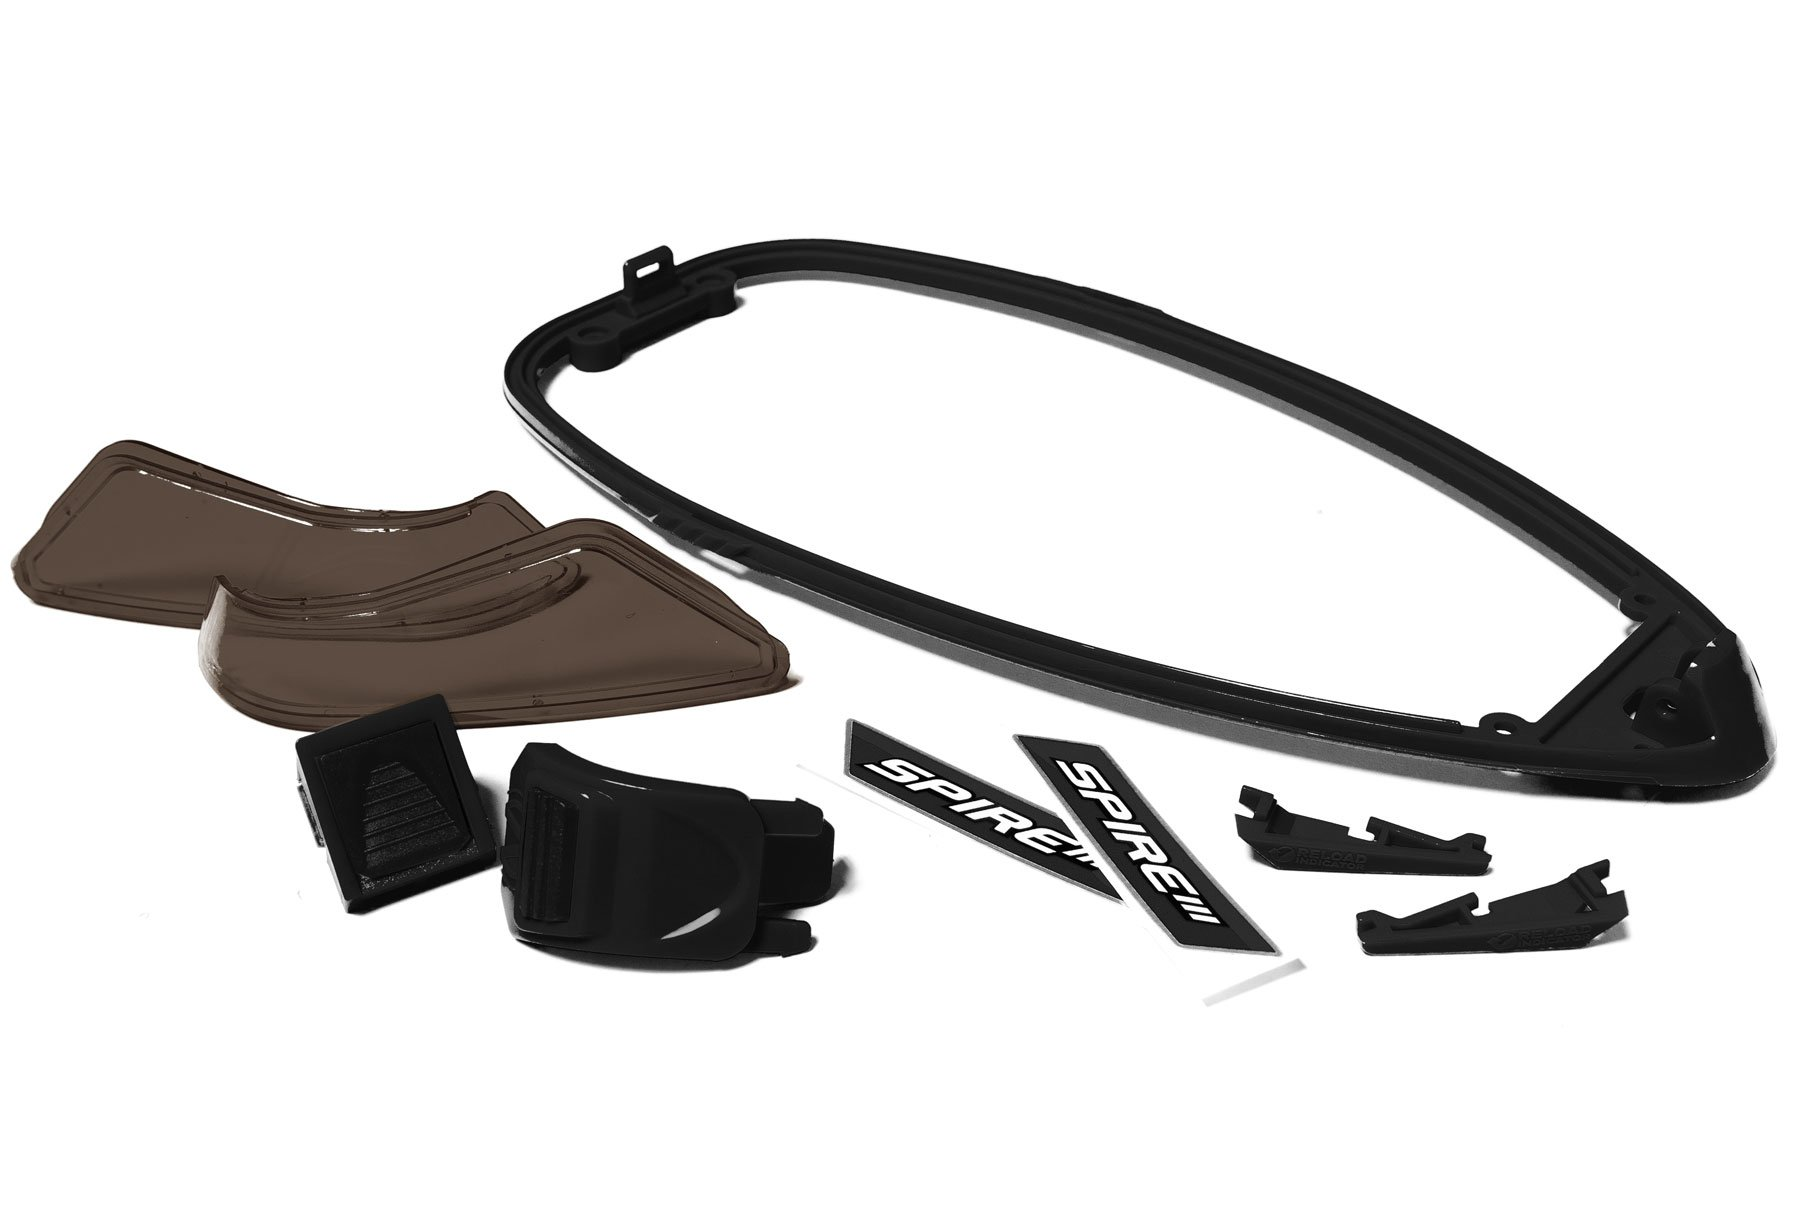 Virtue Paintball Virtue Spire III Color Kit, Black (2225) by Virtue Paintball